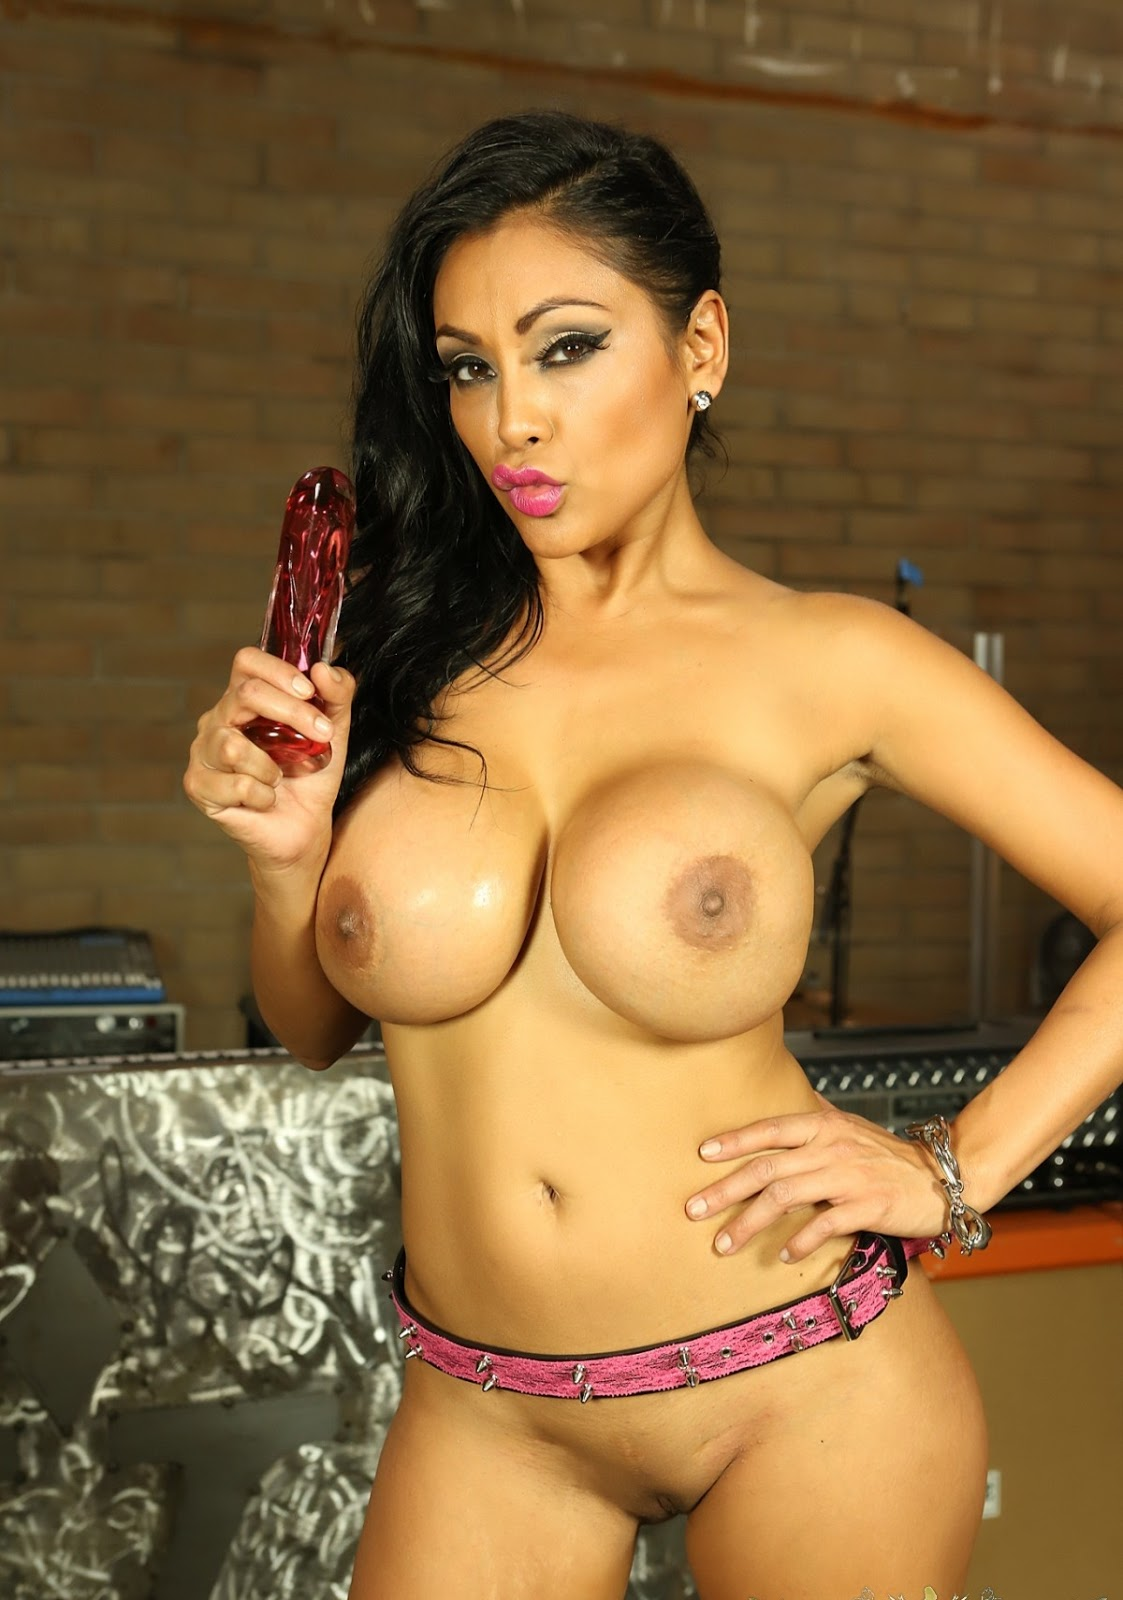 from Desmond naked busty indian porn stars